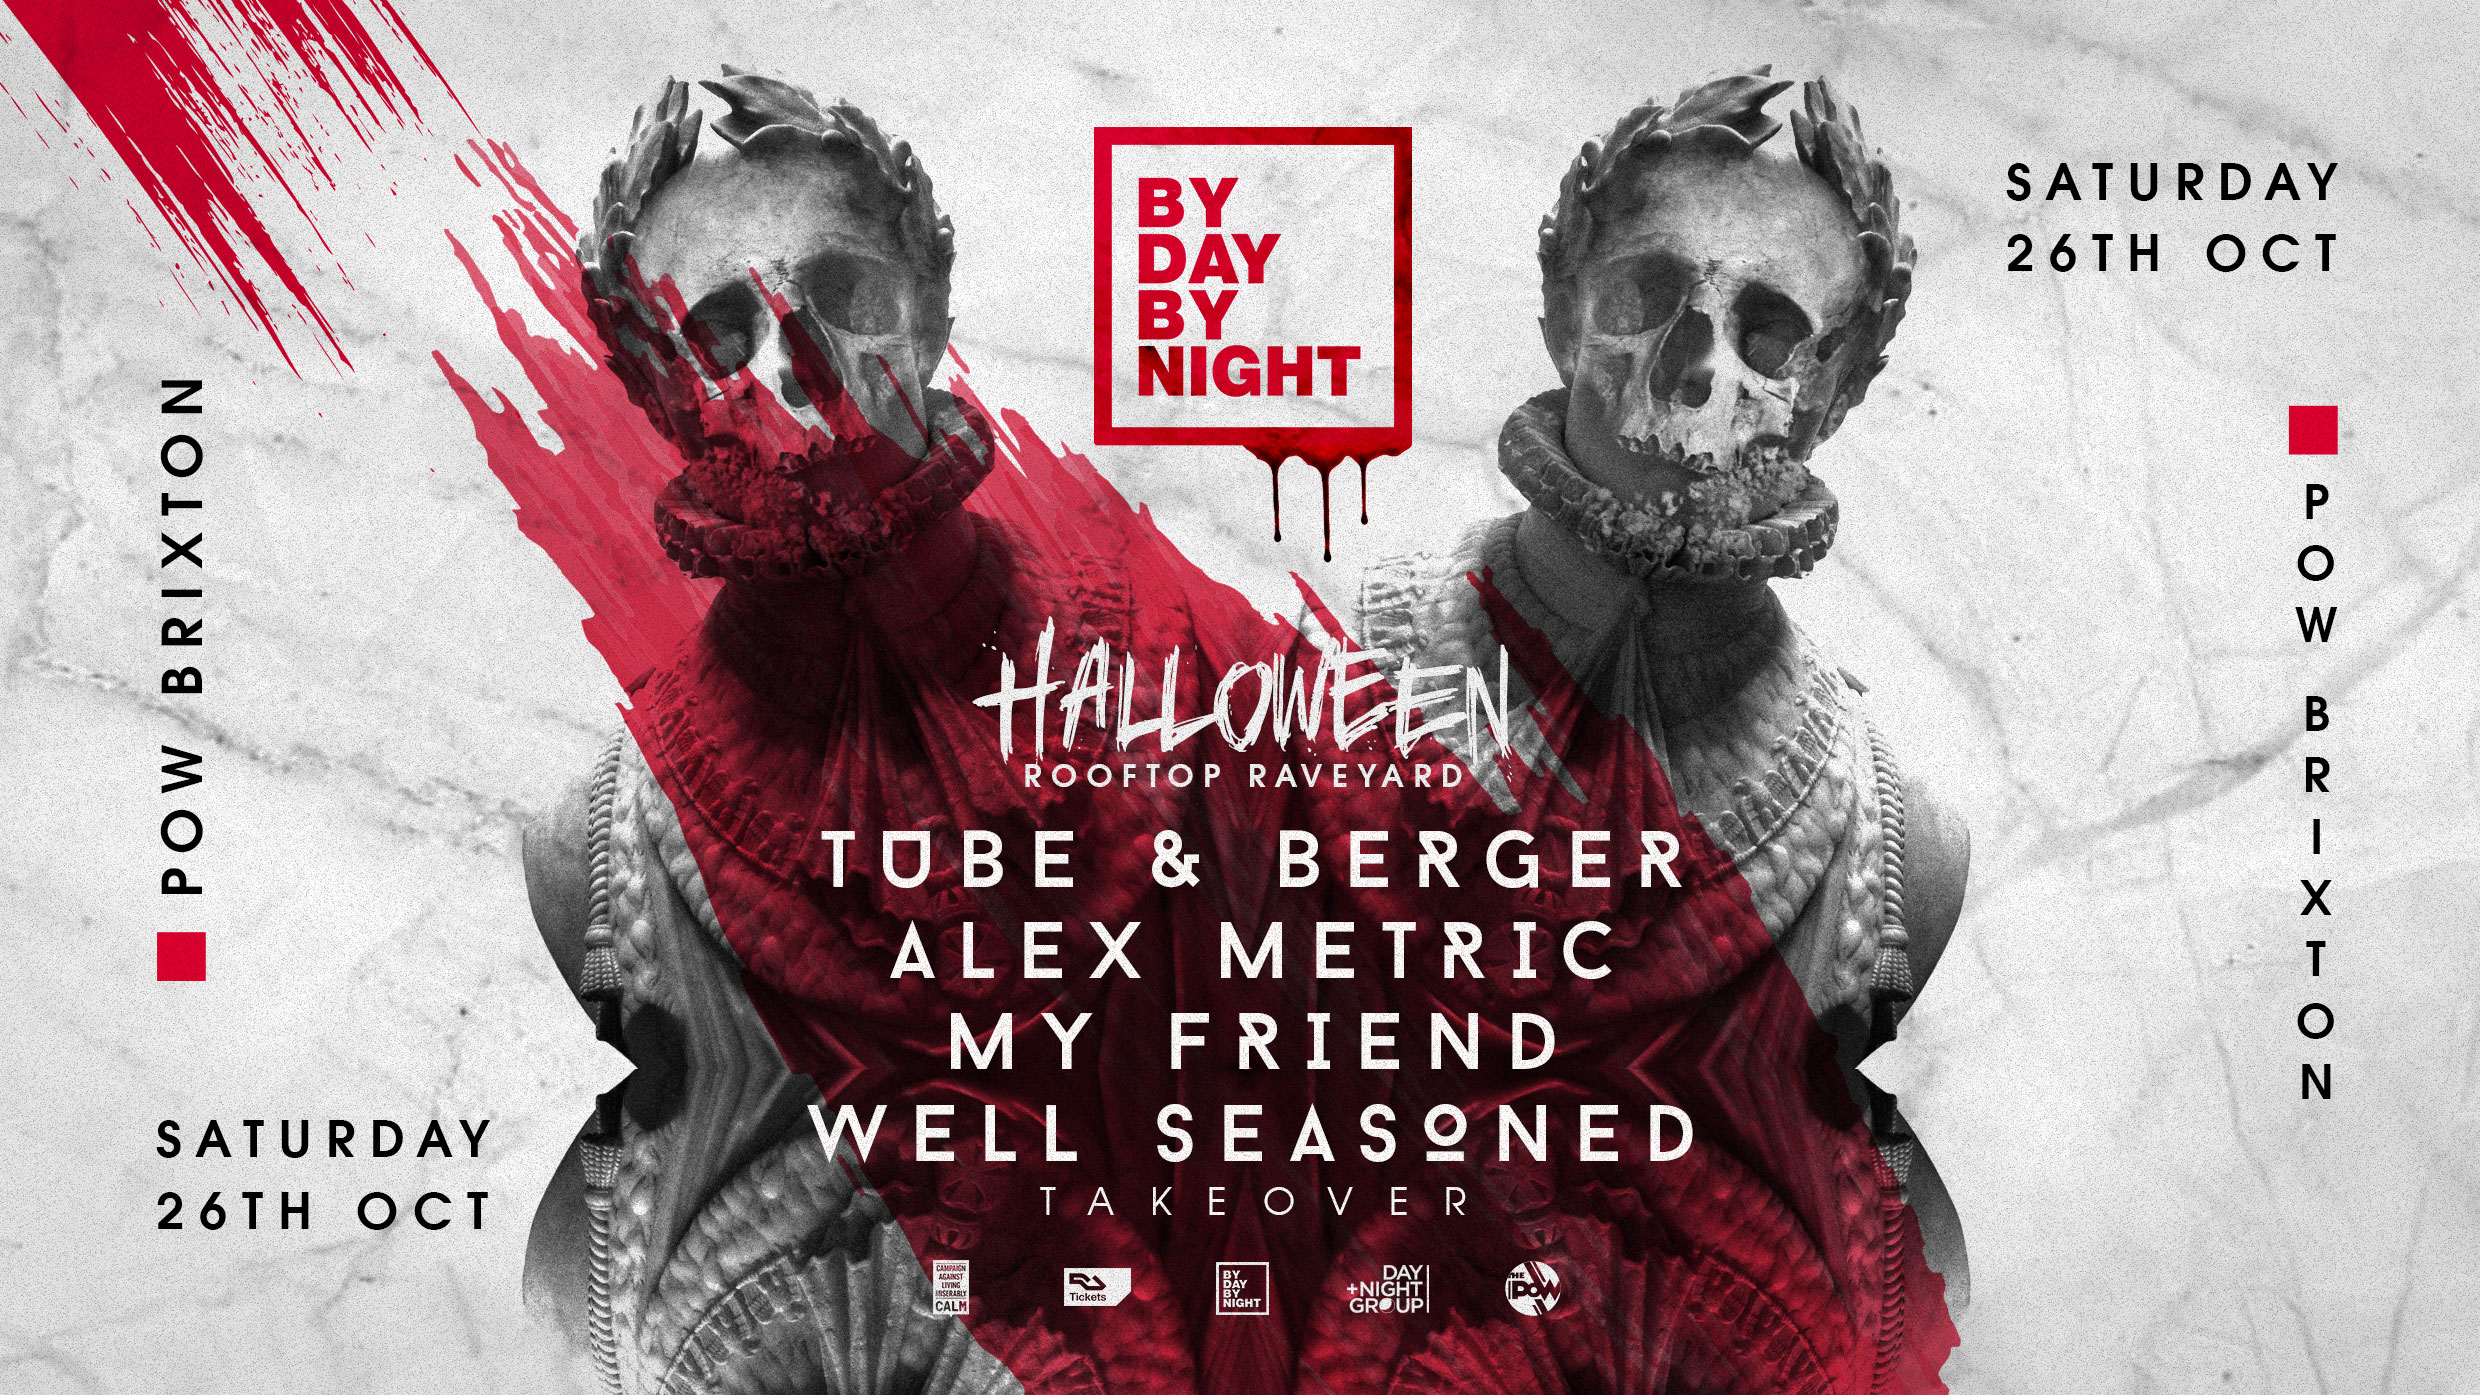 Halloween Rooftop Rave with Tube & Berger, Alex Metric